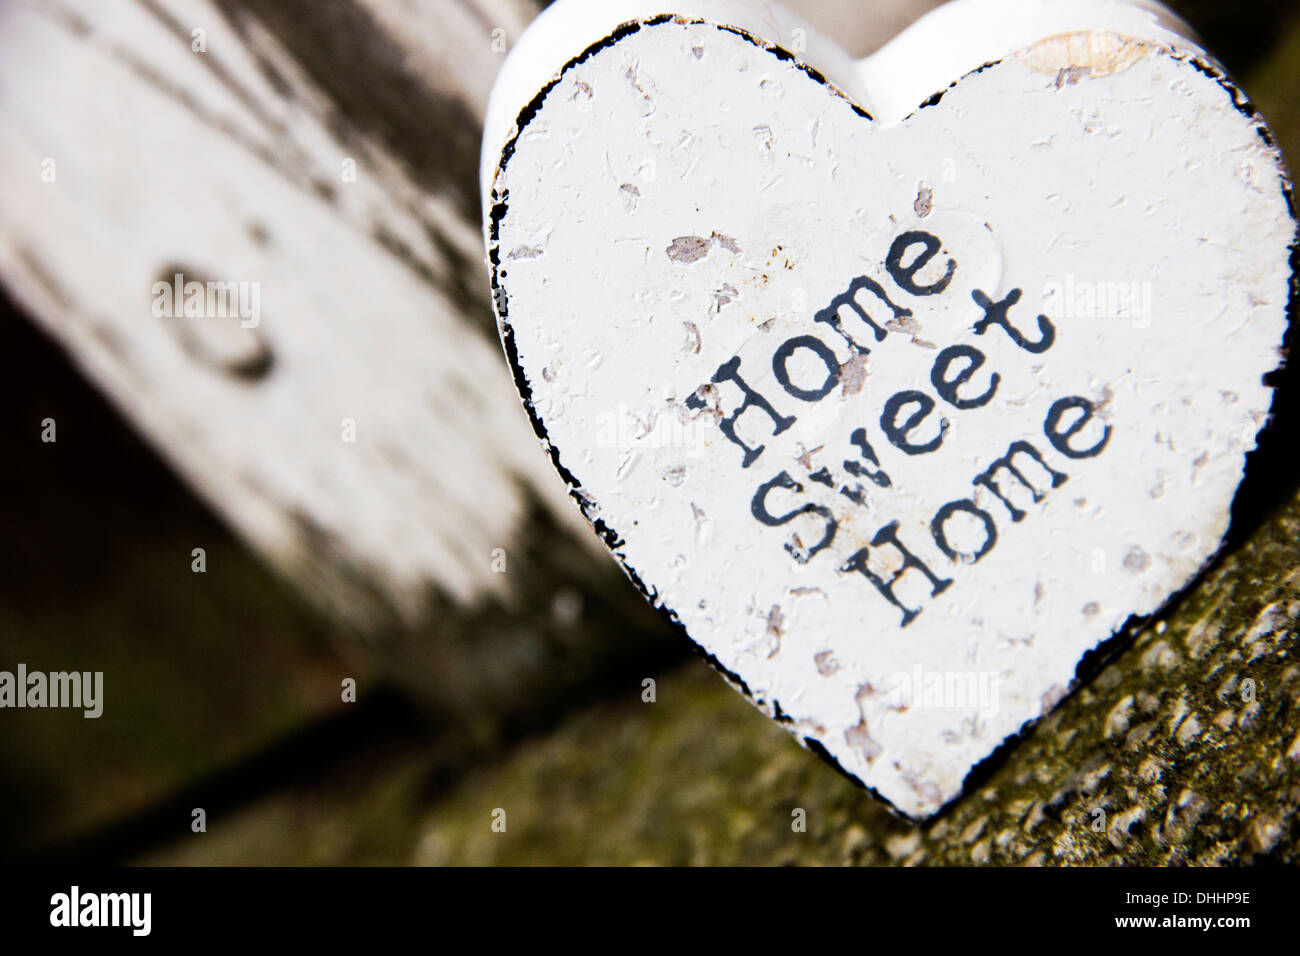 Home Sweet Home - Stock Image